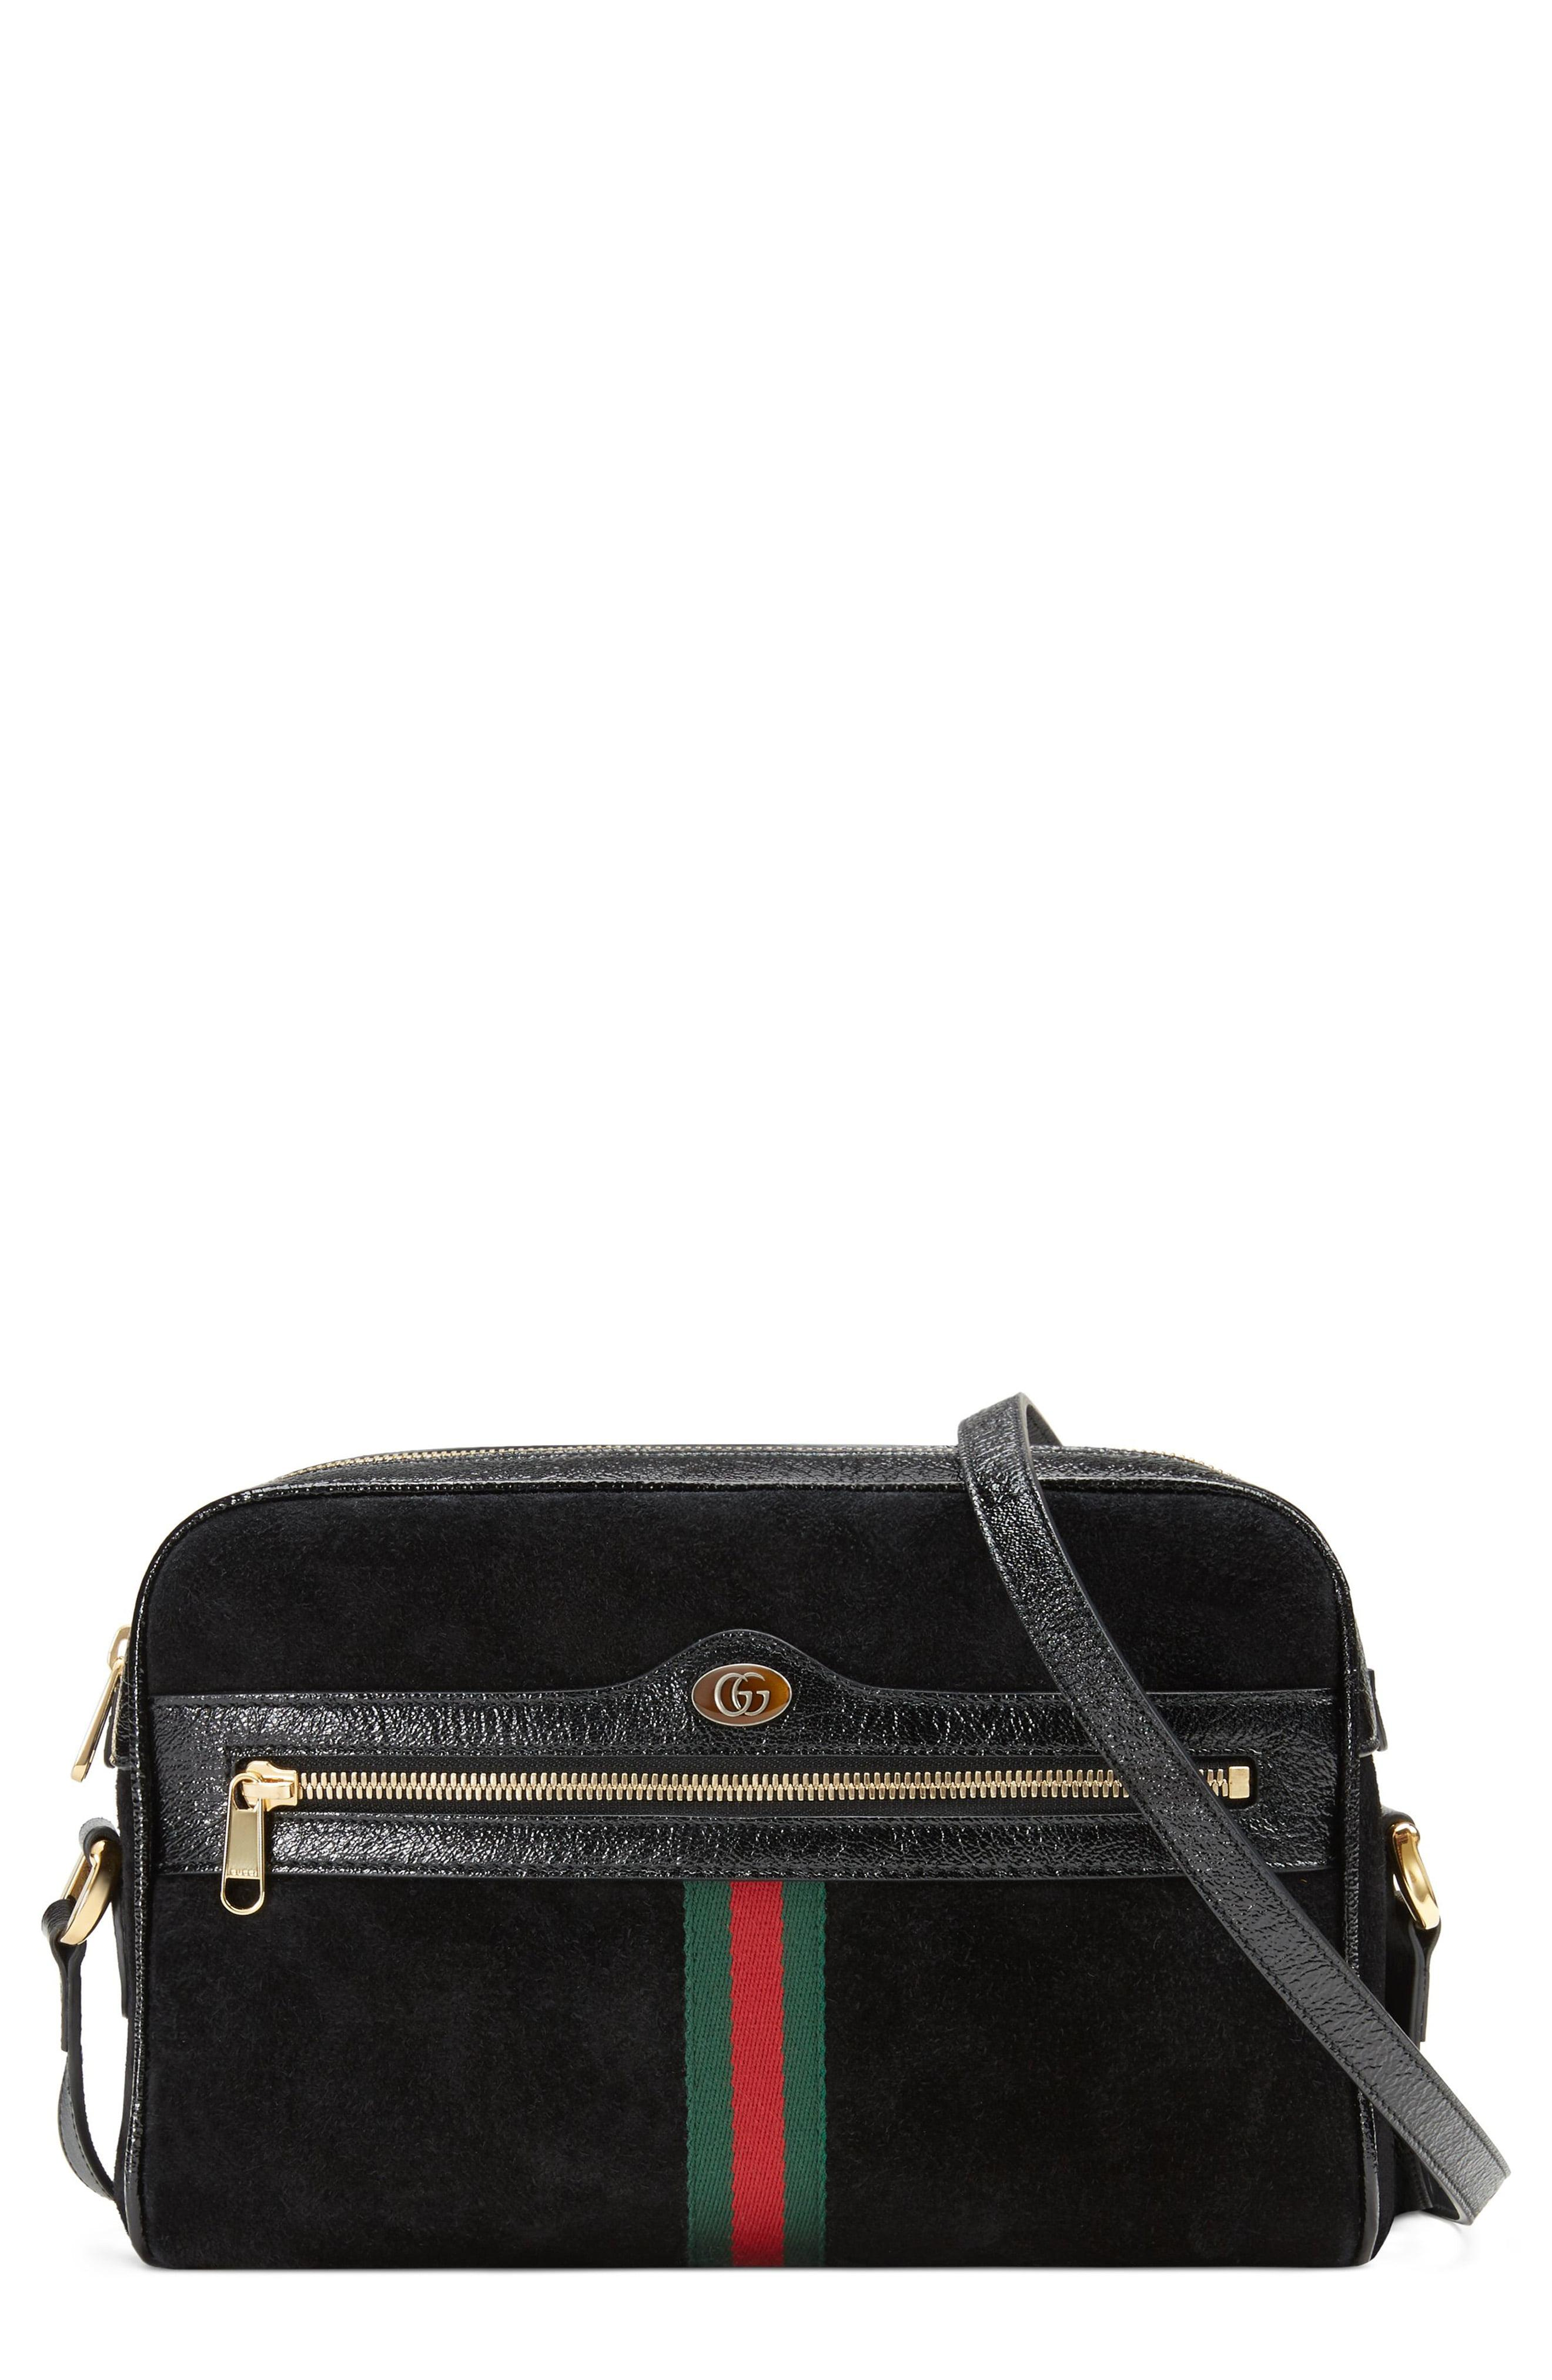 f3c8eb56825 Lyst - Gucci Ophidia Small Suede Crossbody Bag in Black